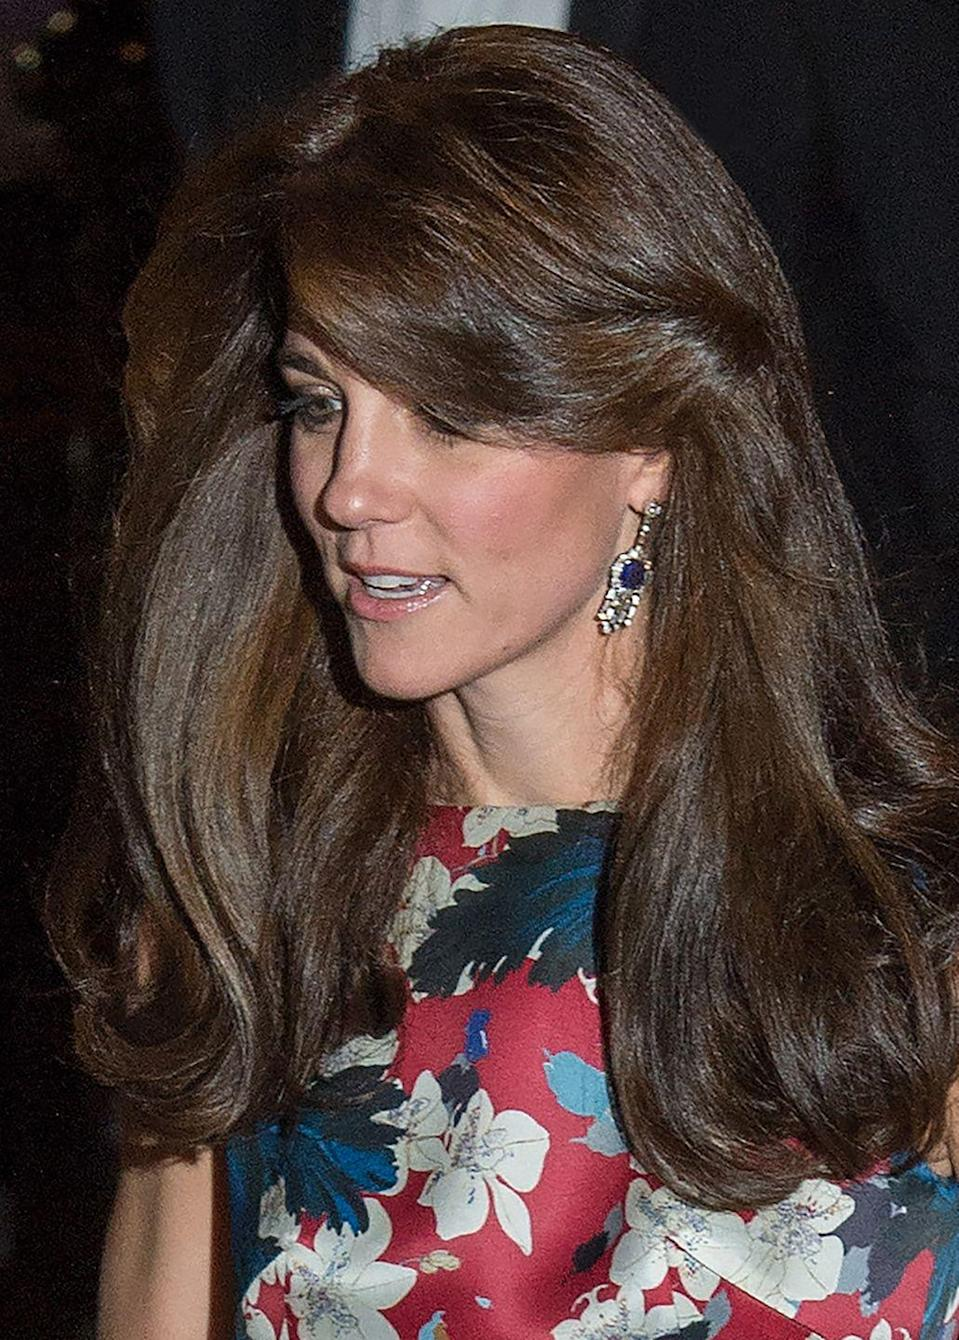 <p>In 2015, the Duchess of Cambridge wore her great-grandmother-in-law's sapphire and diamond fringe earrings for a gala at the Victoria and Albert Museum in London. </p>